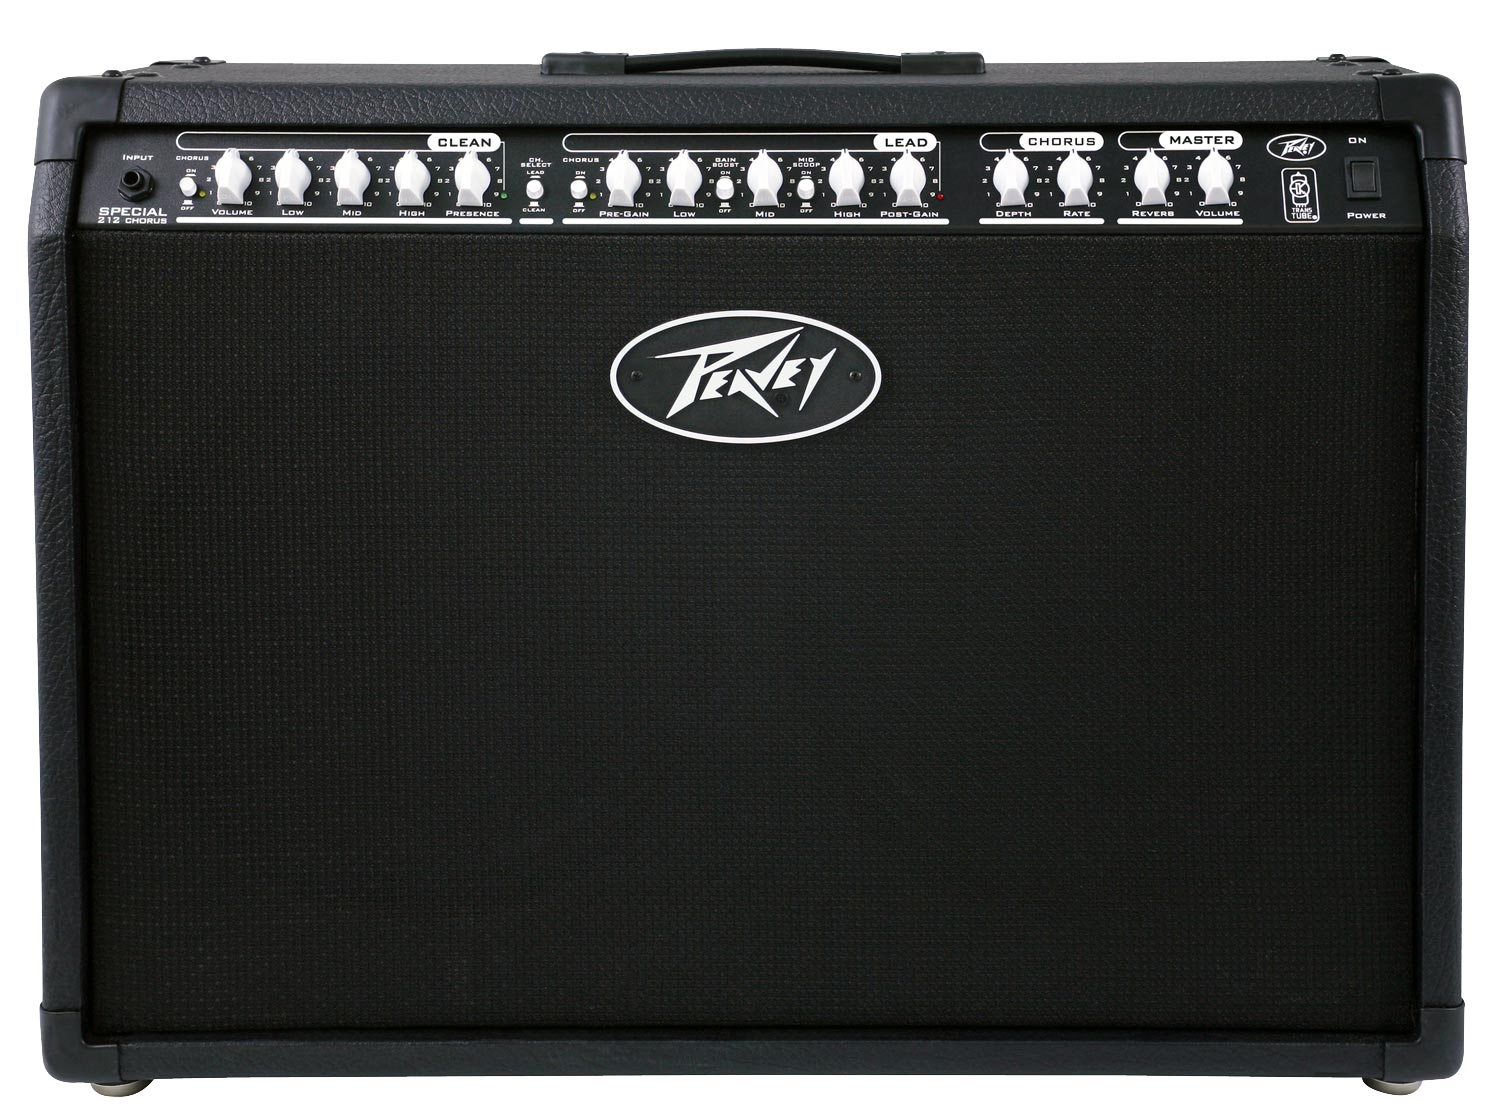 peavey special chorus 212 combo guitar amp 2x12 blue marvel speaker woofer pev13 3601610. Black Bedroom Furniture Sets. Home Design Ideas